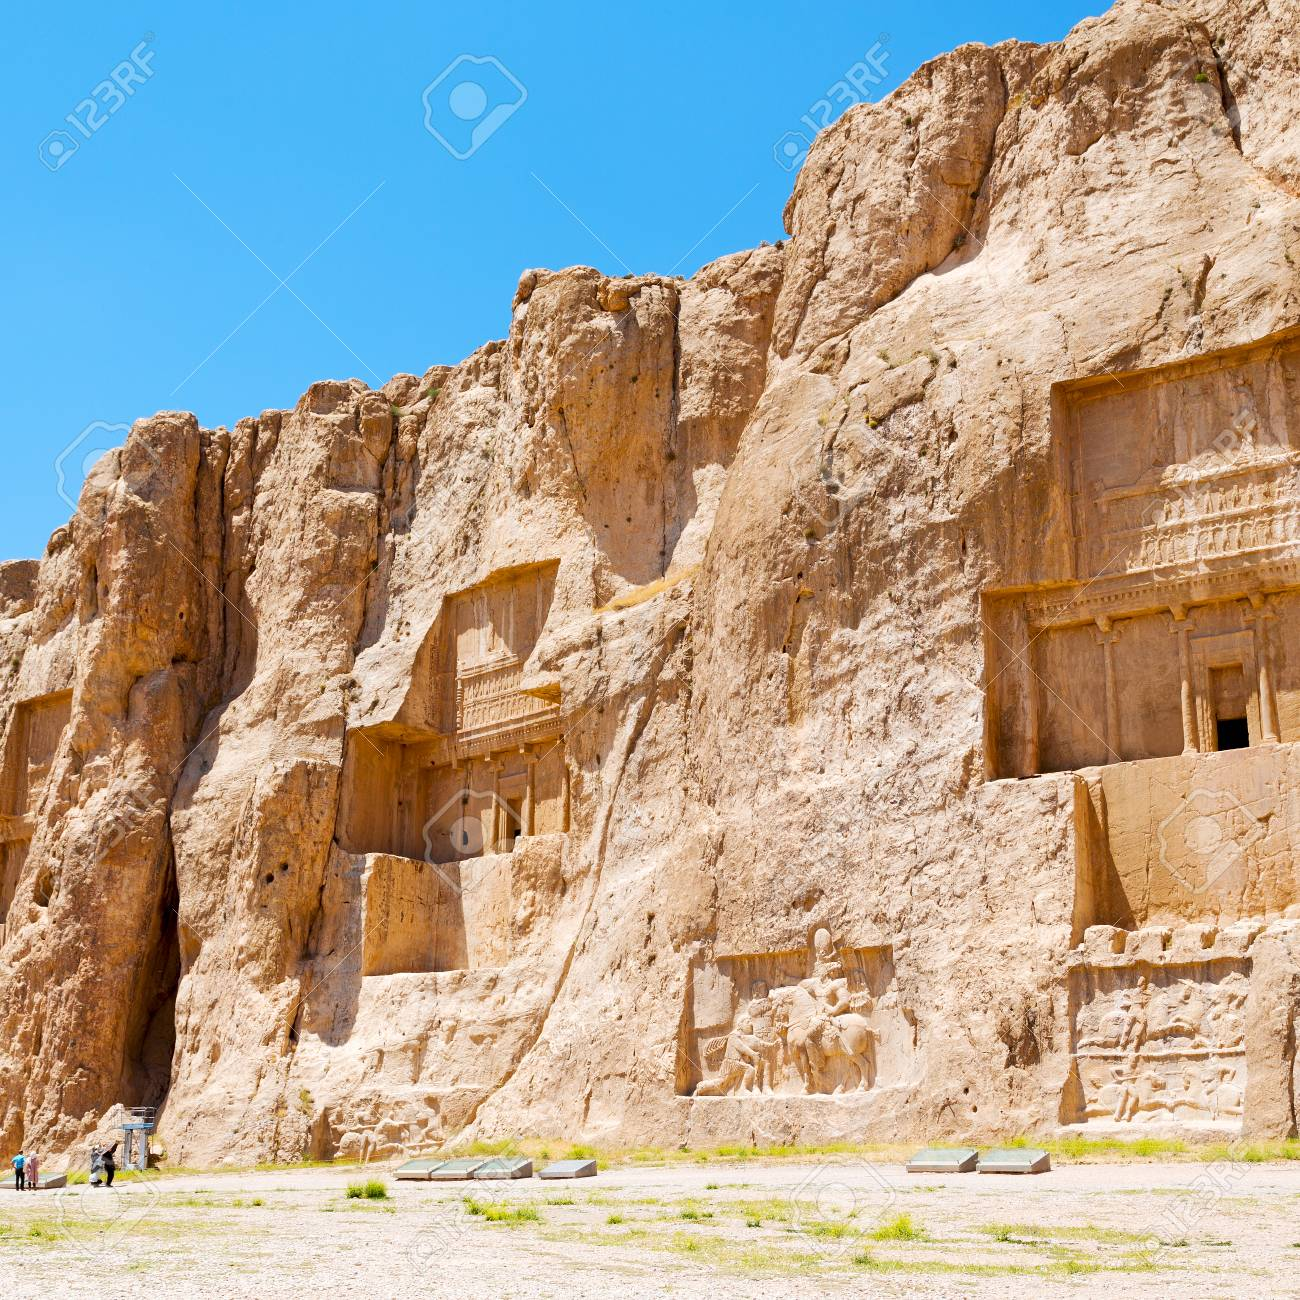 In Iran Near Persepolis The Old Ruins Historical Destination Stock Photo Picture And Royalty Free Image Image 69566081